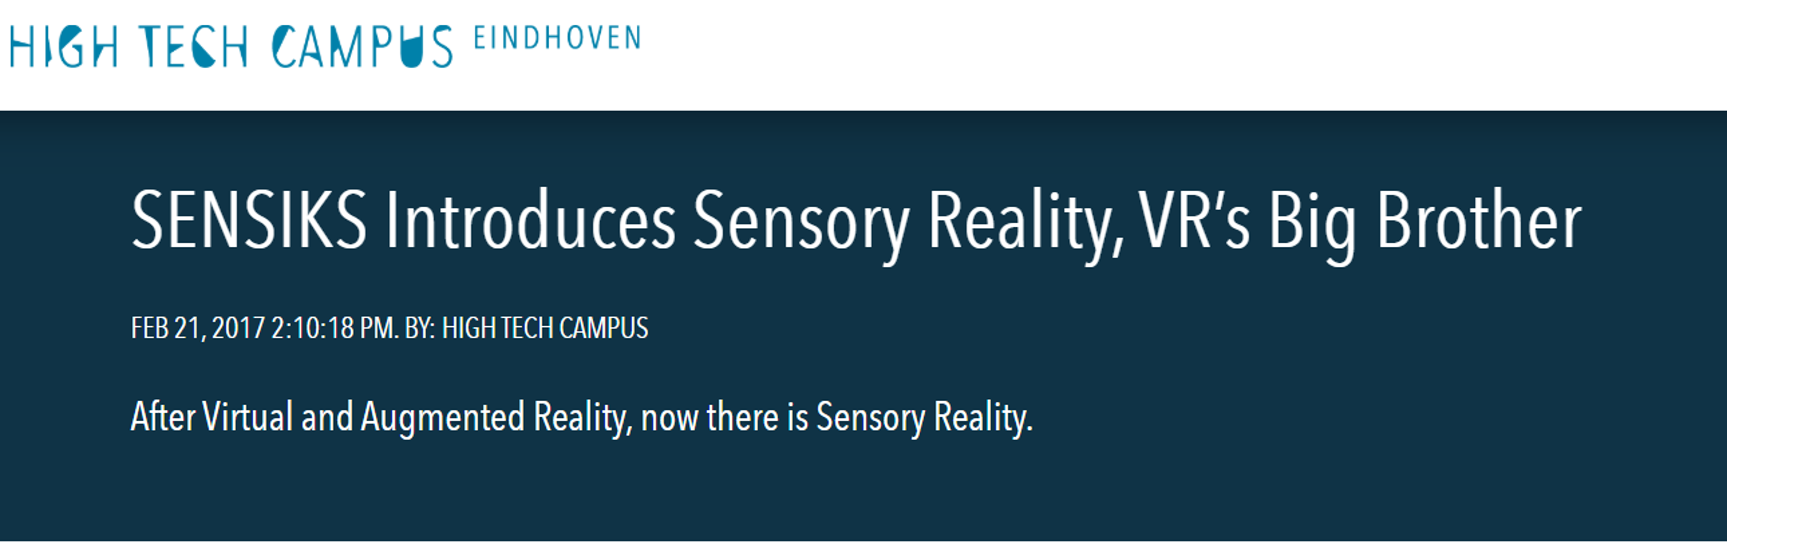 HIGH TECH CAMPUS After Virtual and Augmented Reality, now there is Sensory Reality